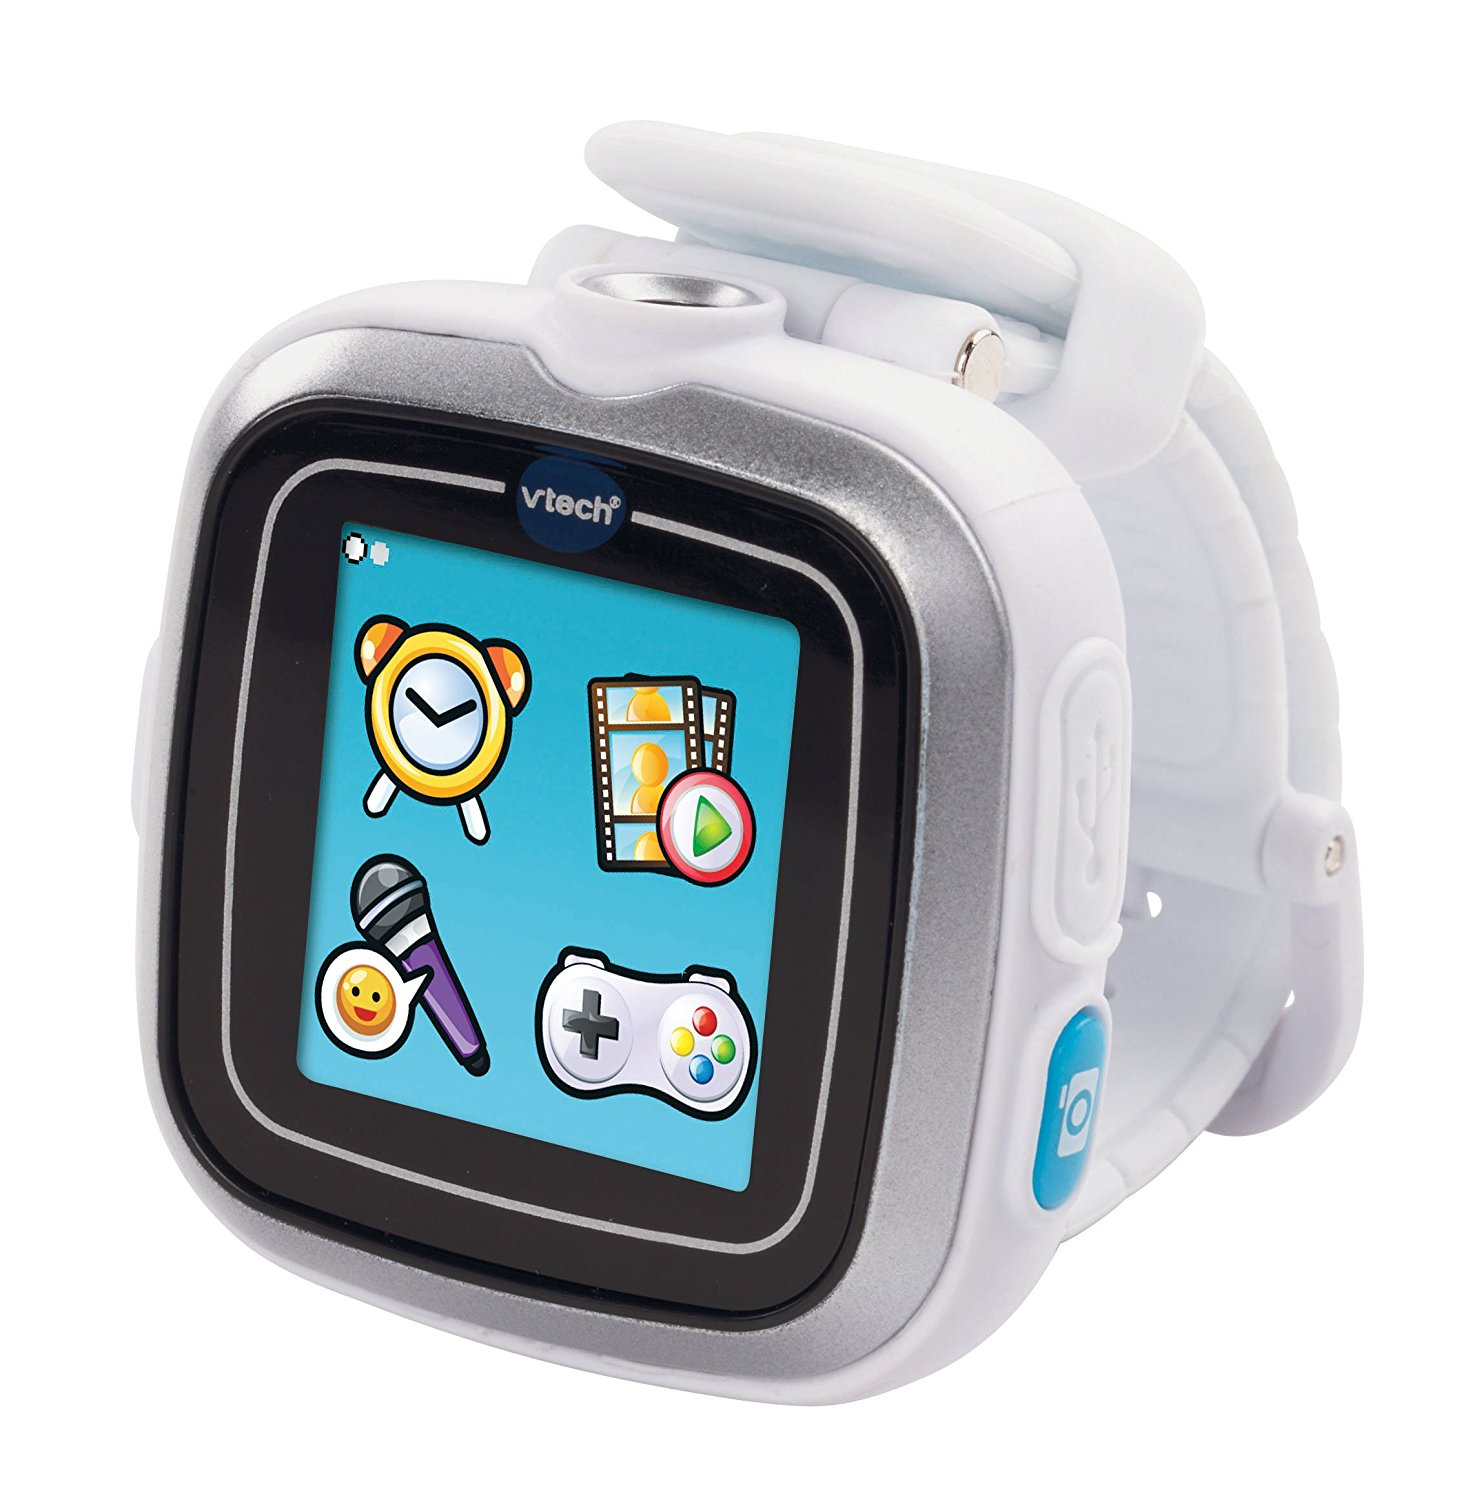 VTech Kidizoom Smartwatch, White by